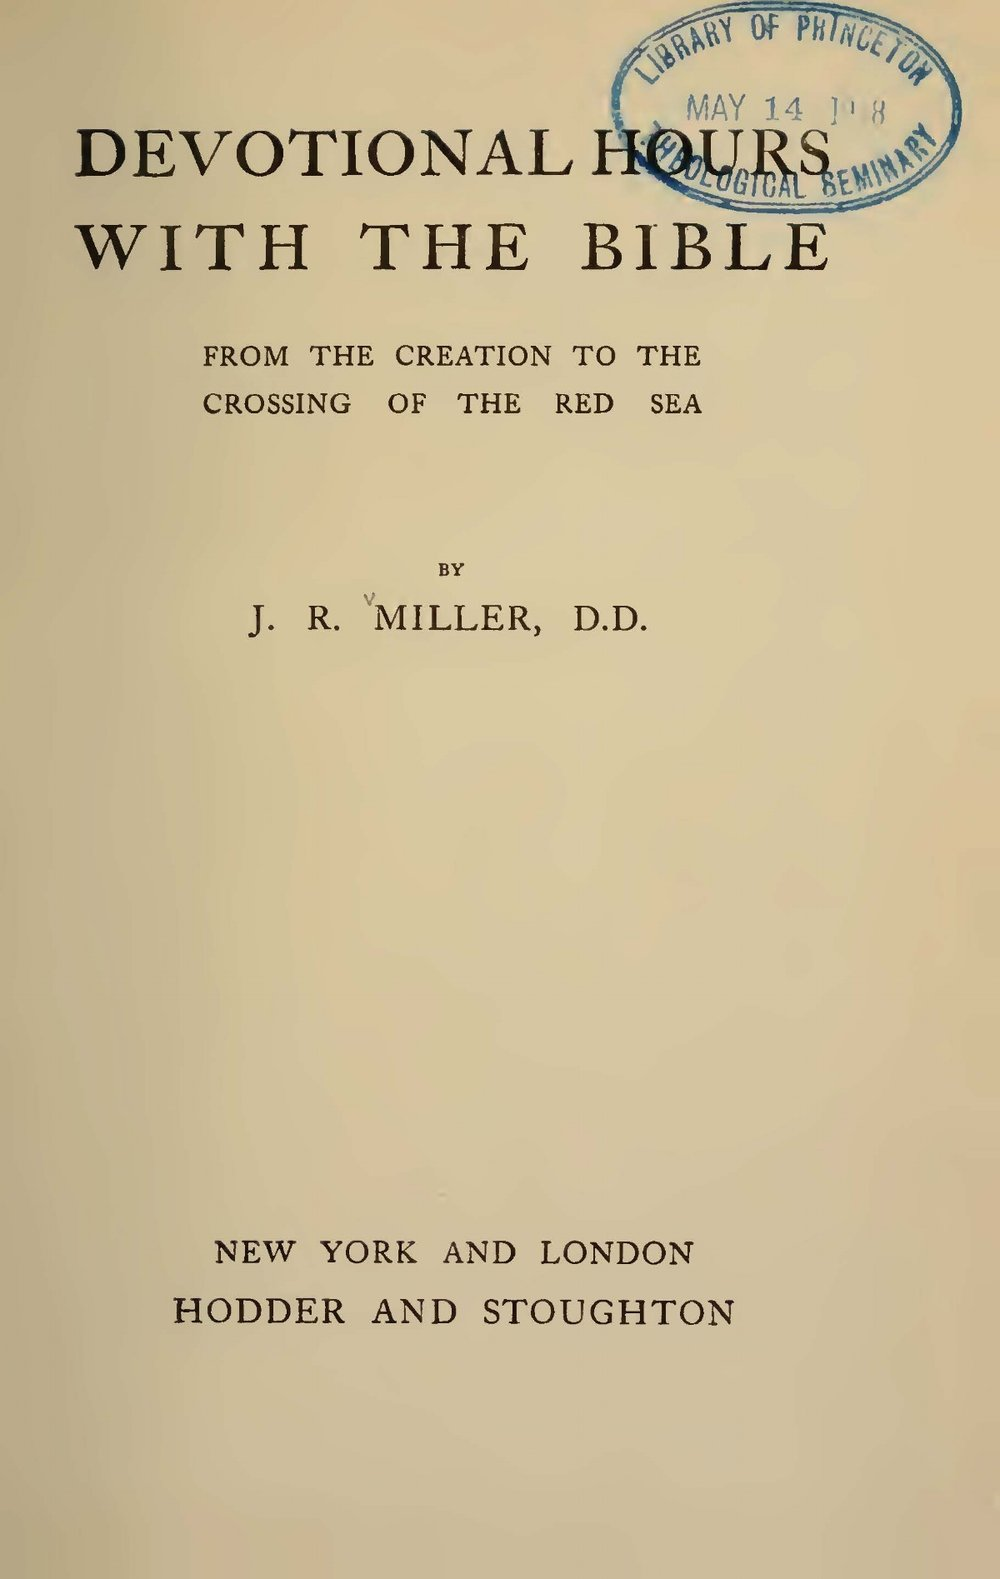 Miller, James Russell, Devotional Hours With the Bible, Vol. 1 Title Page.jpg